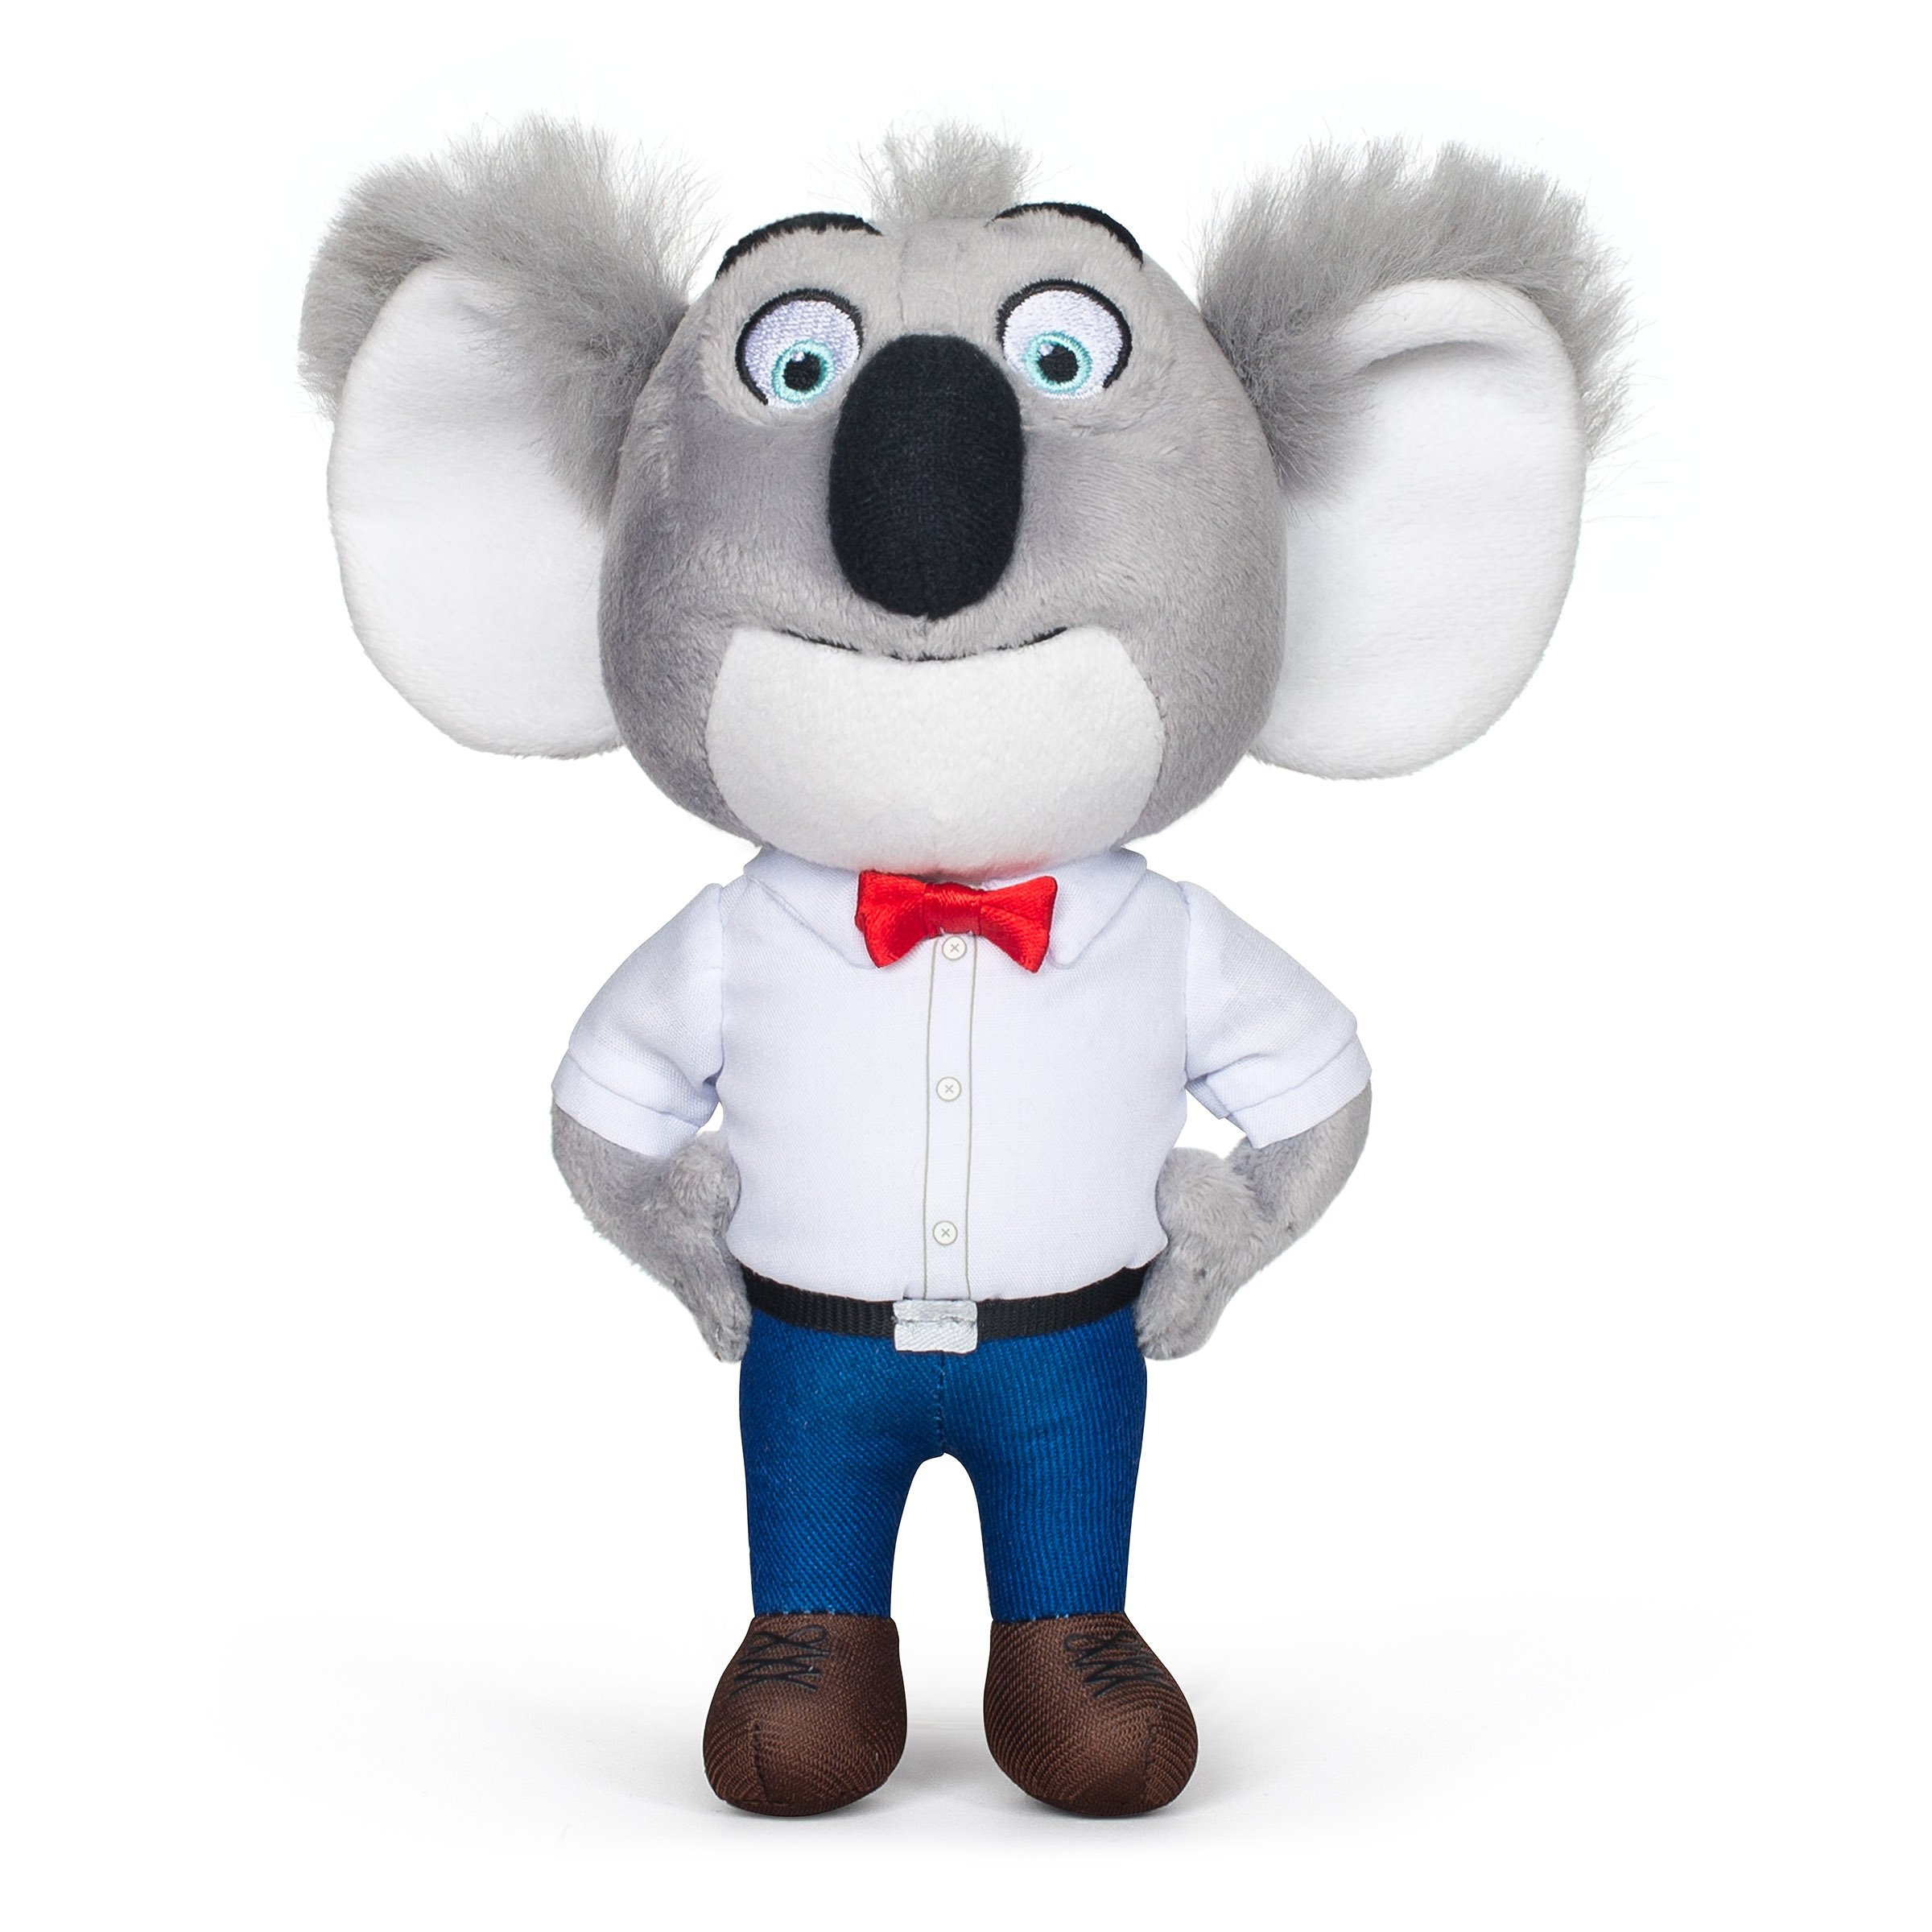 Universal Sing Buster Plush (1 Piece), Small by Universal